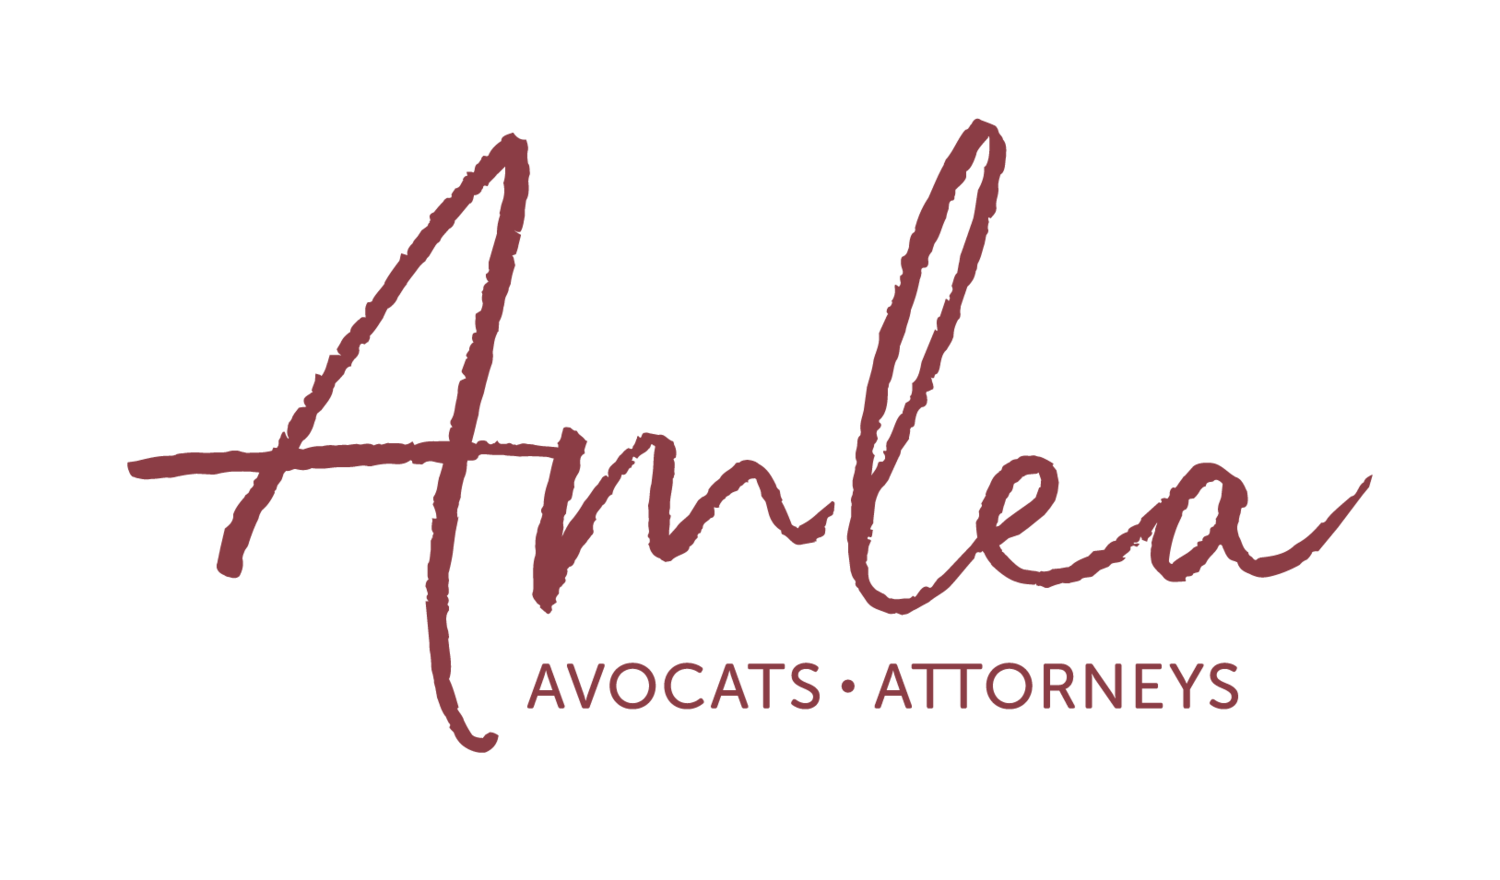 Amlea Avocats | Attorneys